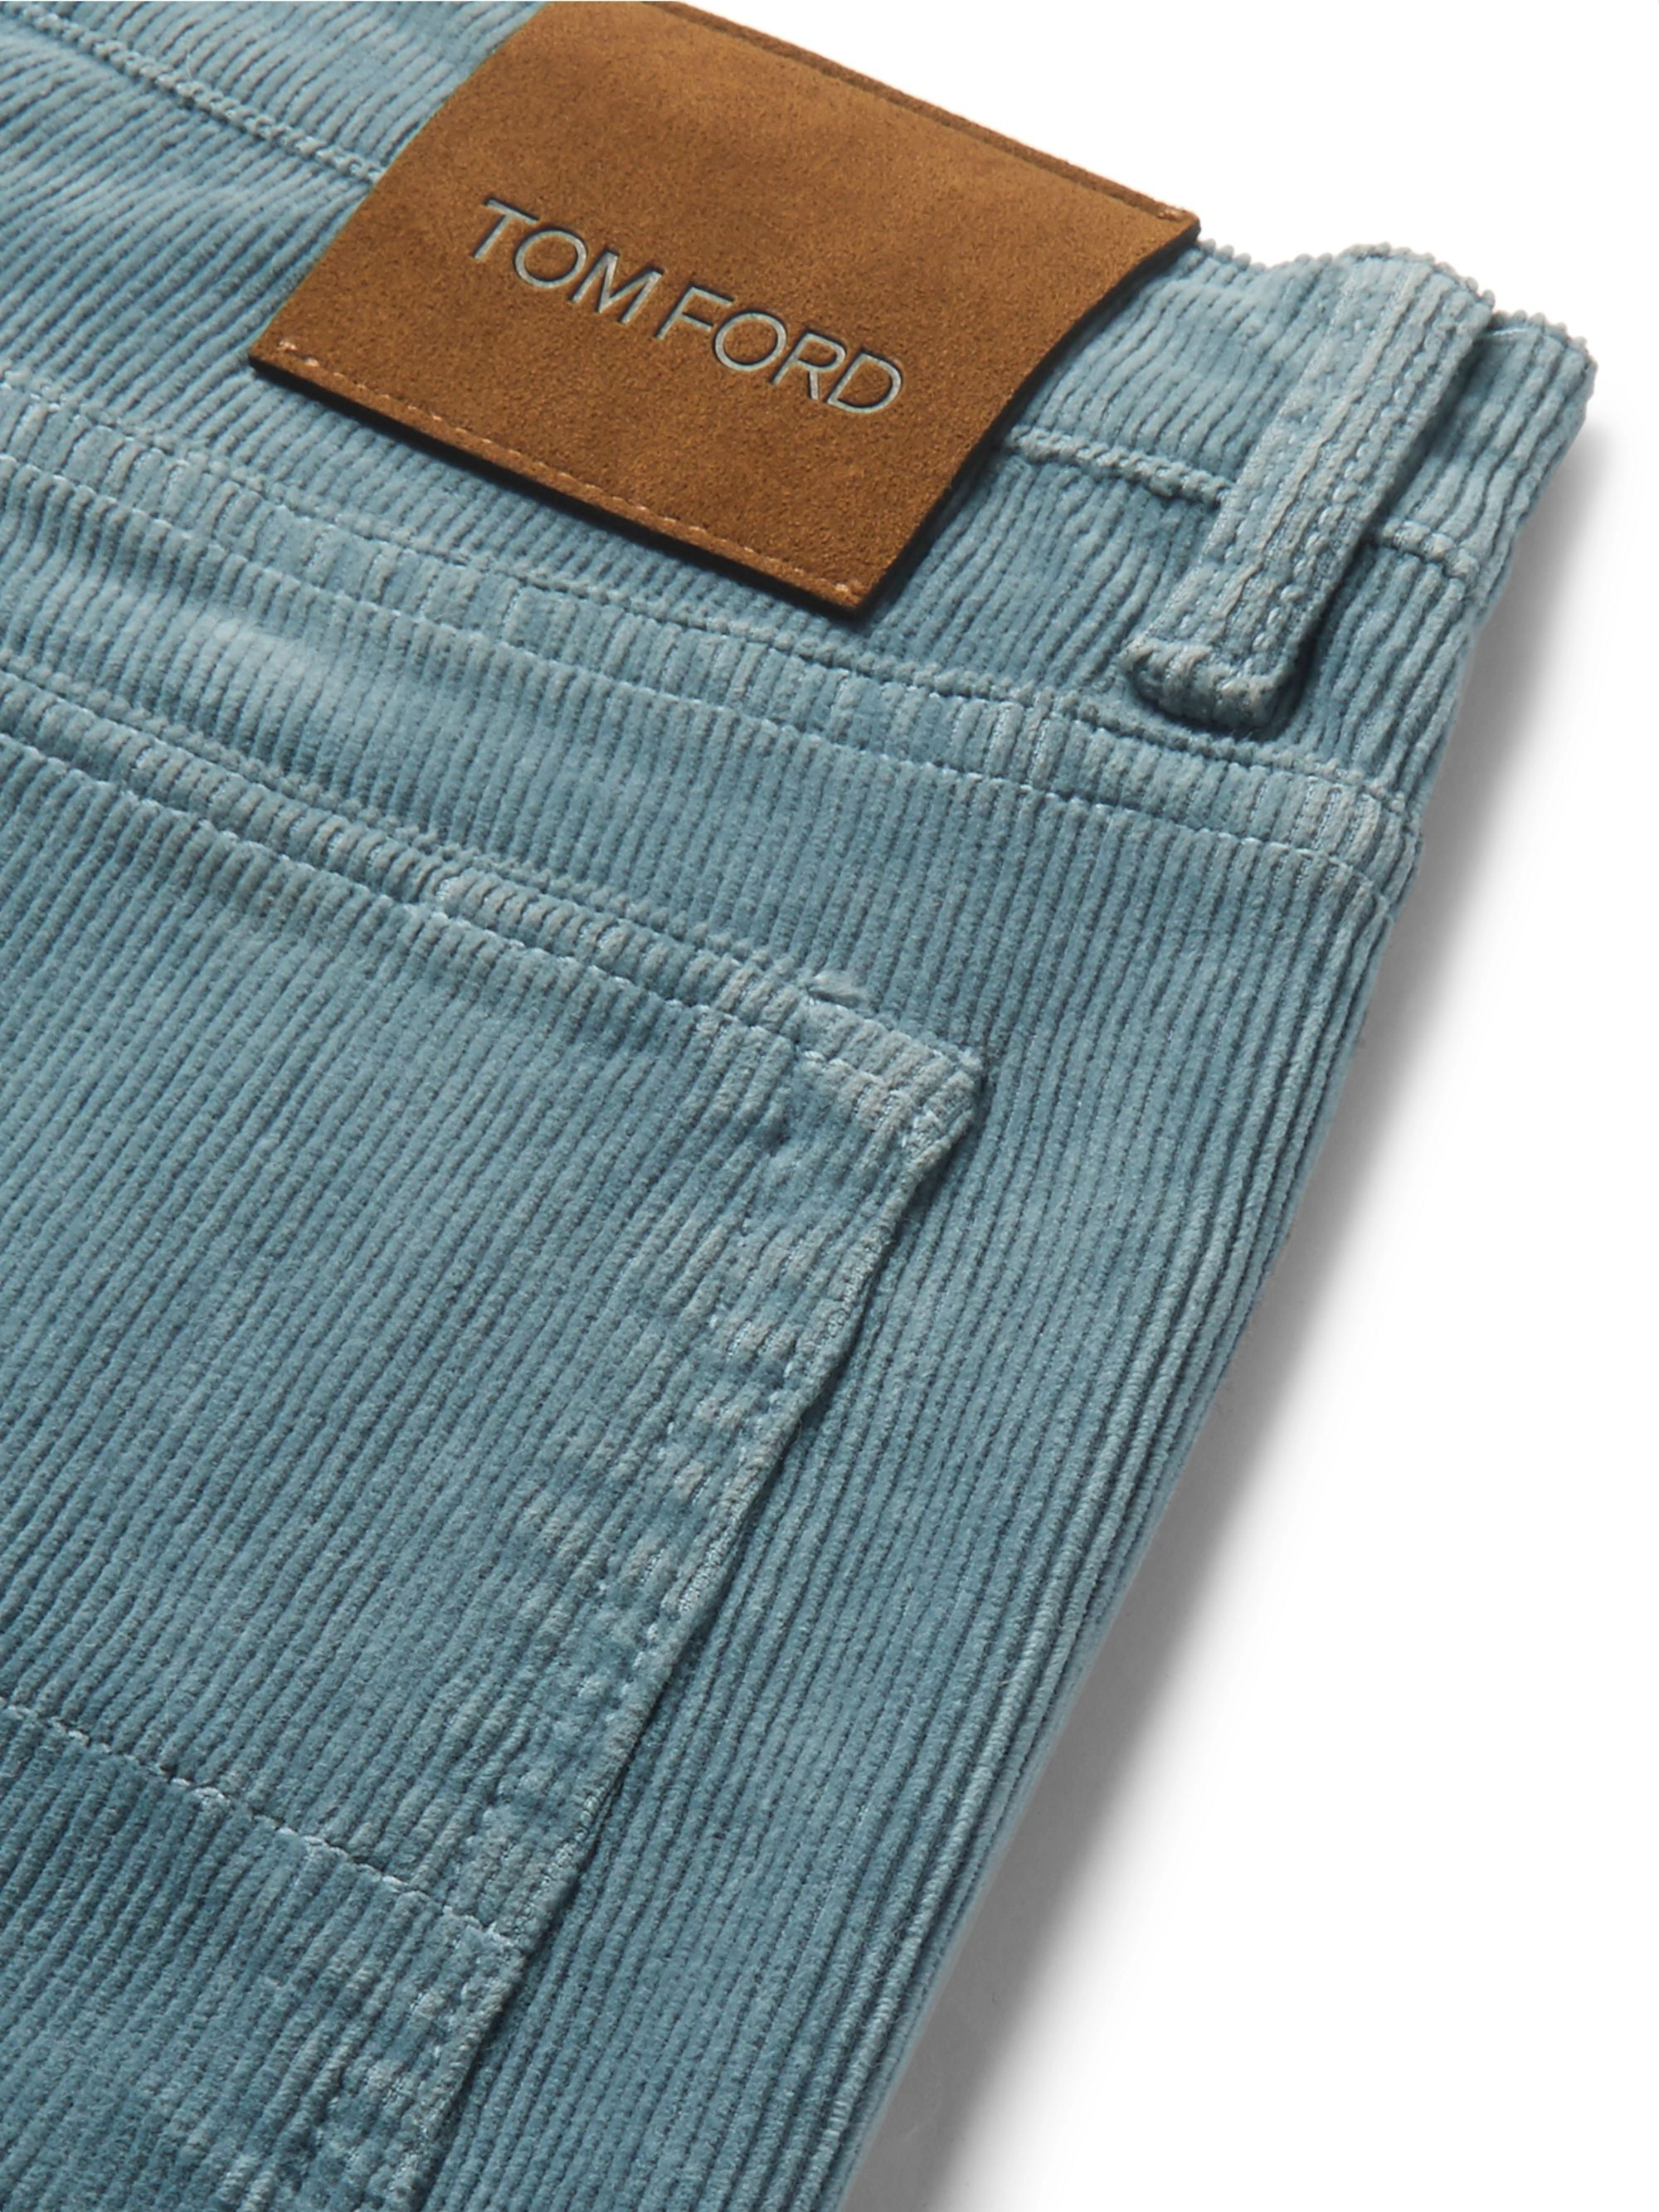 TOM FORD Slim-Fit Stretch-Cotton Corduroy Trousers